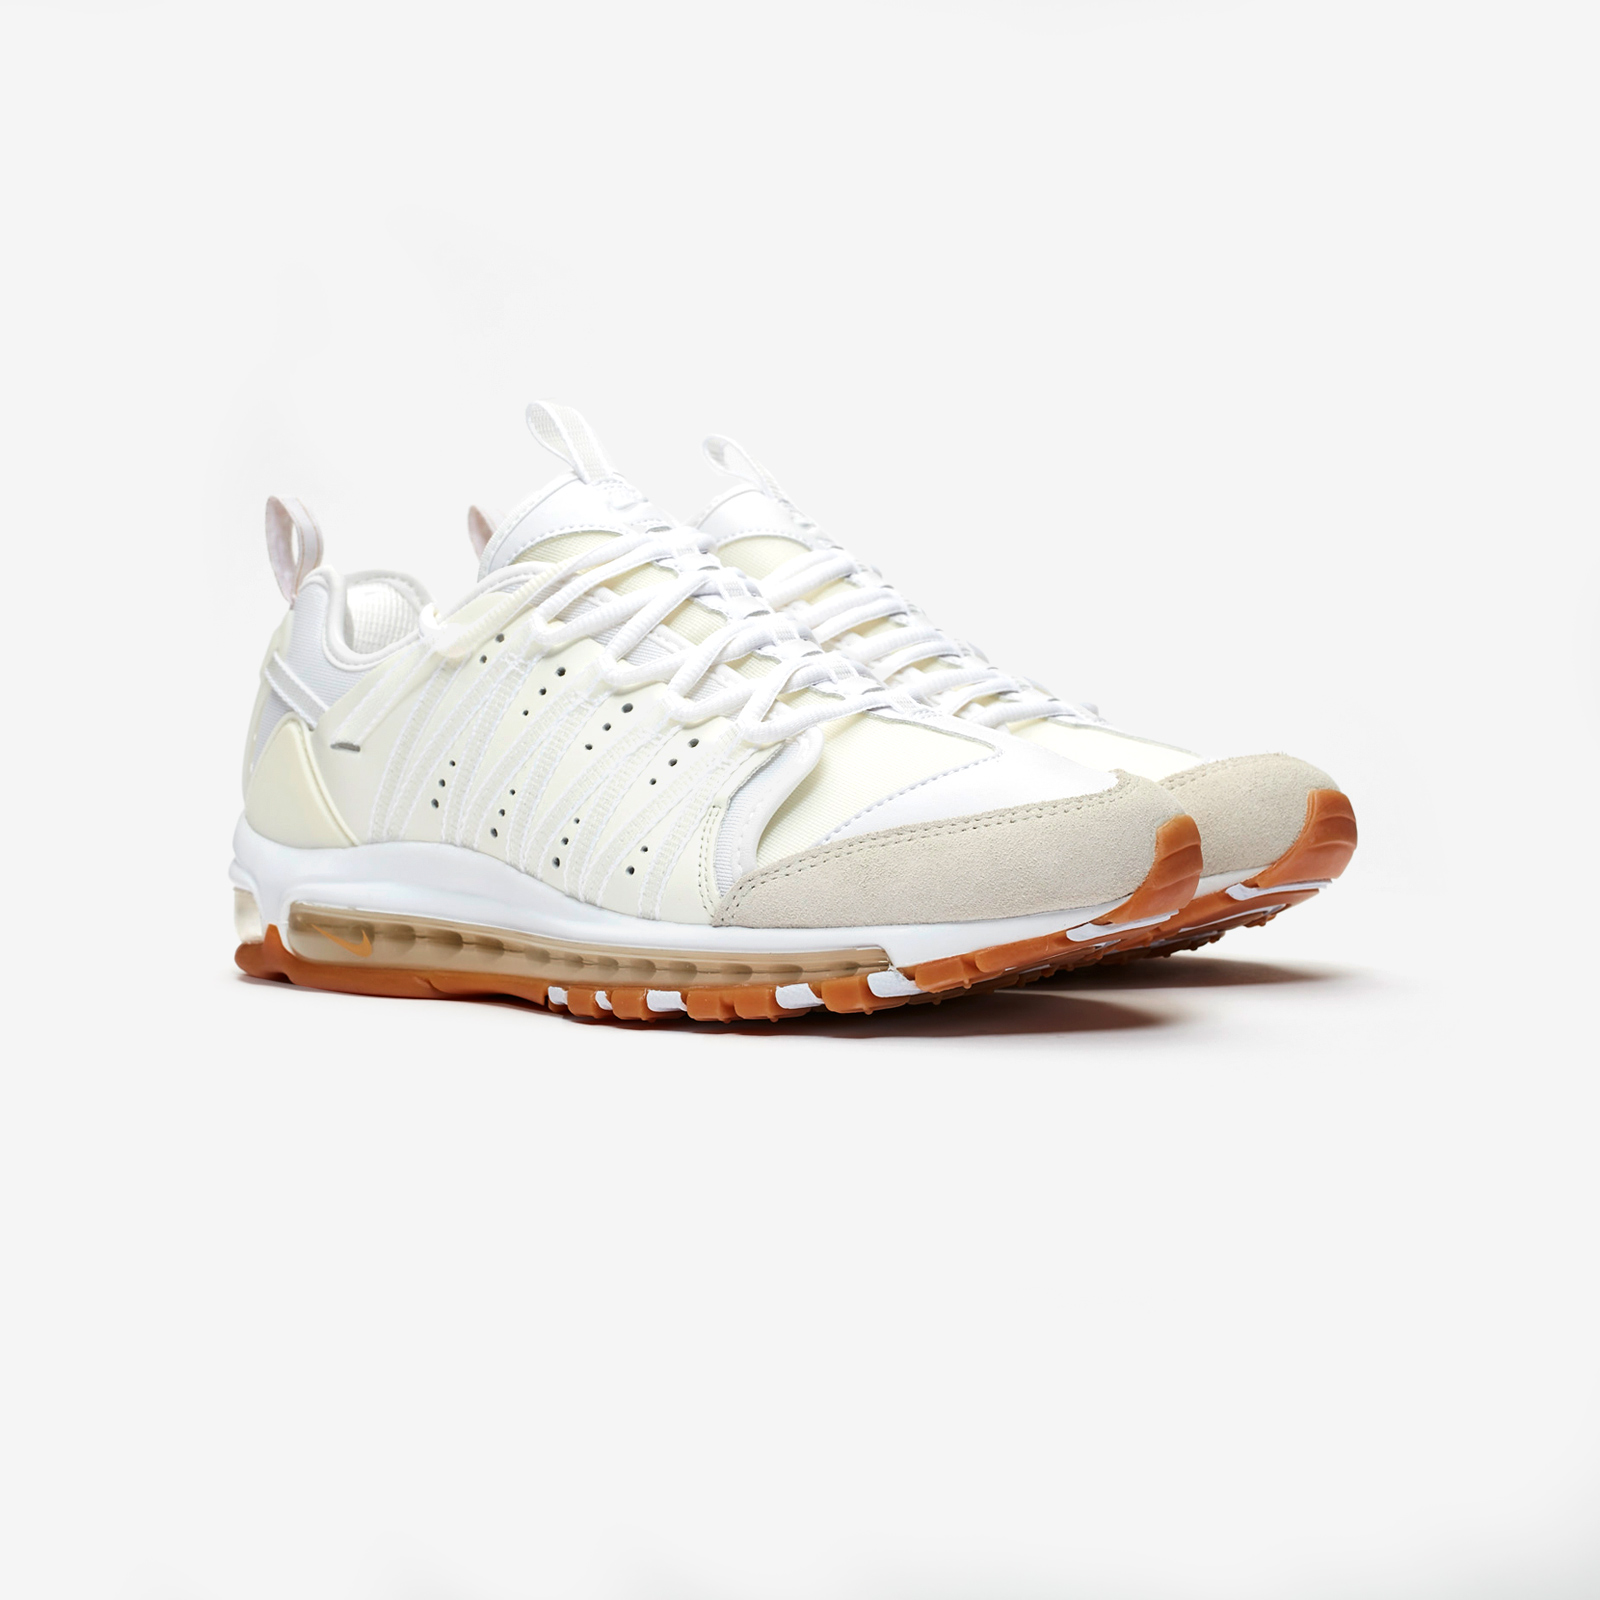 brand new 72404 72ee2 Nike Air Max 97 Haven   Clot - Ao2134-100 - Sneakersnstuff   sneakers    streetwear online since 1999